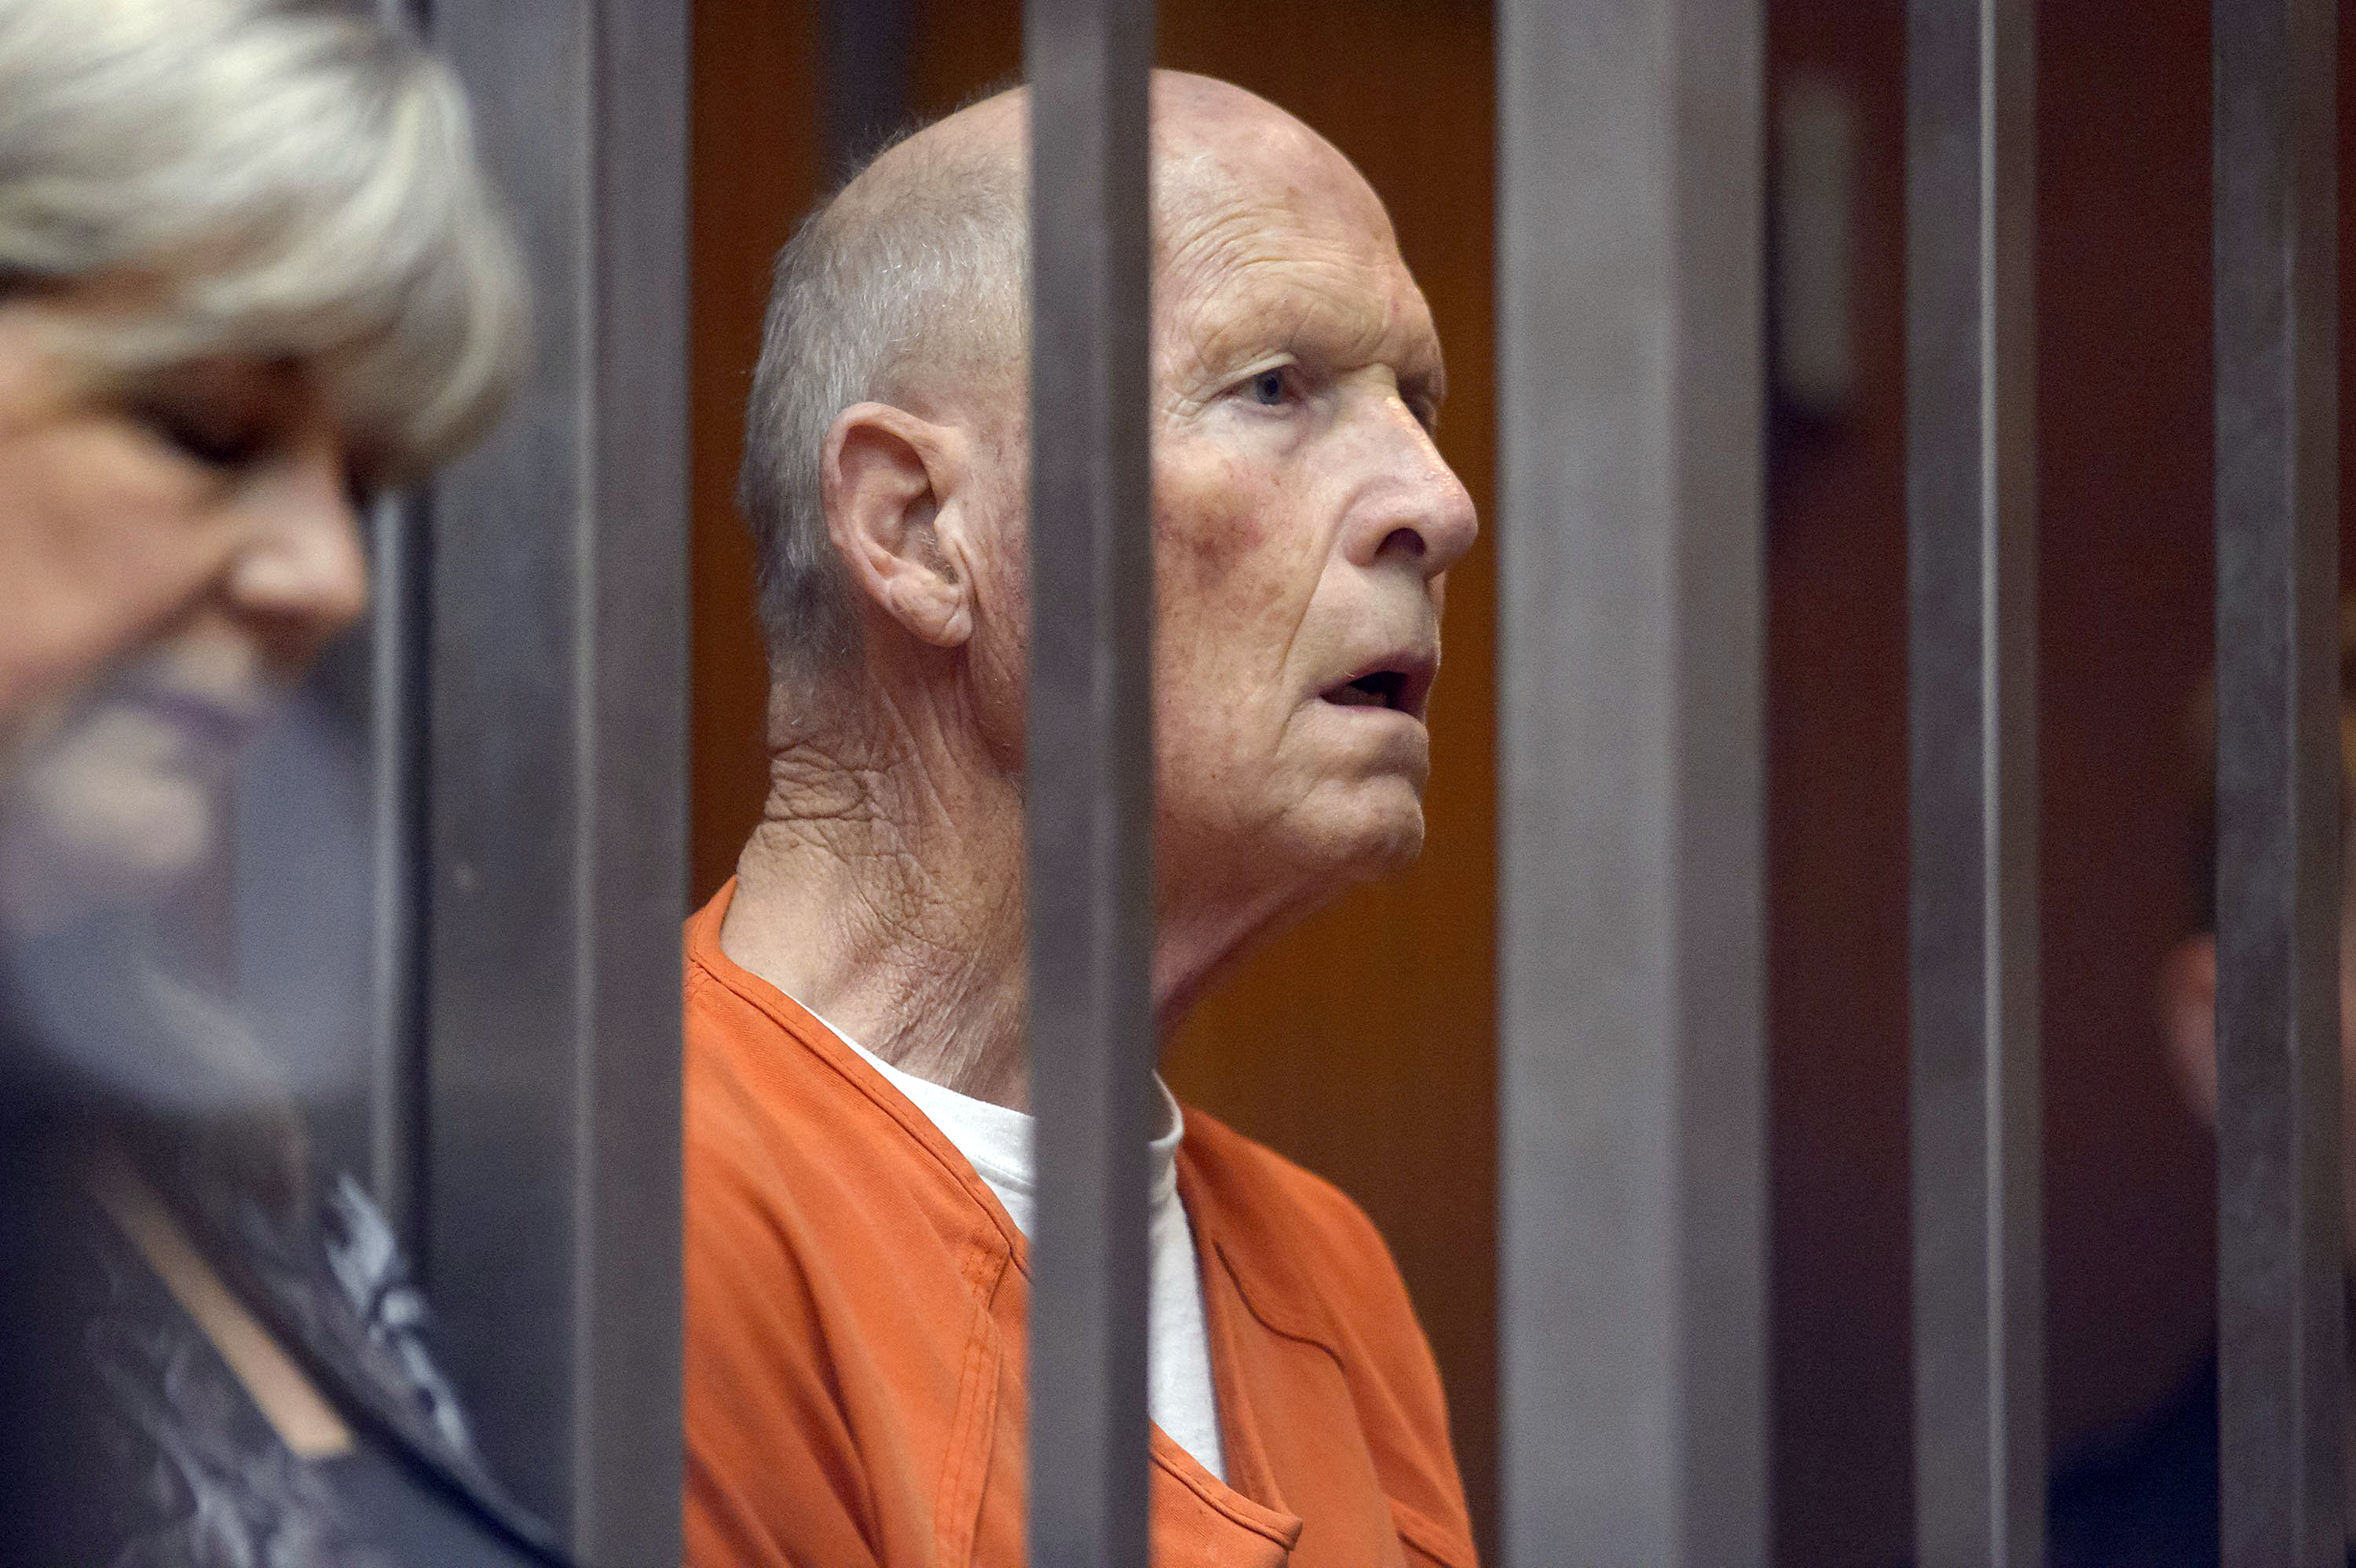 A Timeline Of The Golden State Killer's Crimes And Where